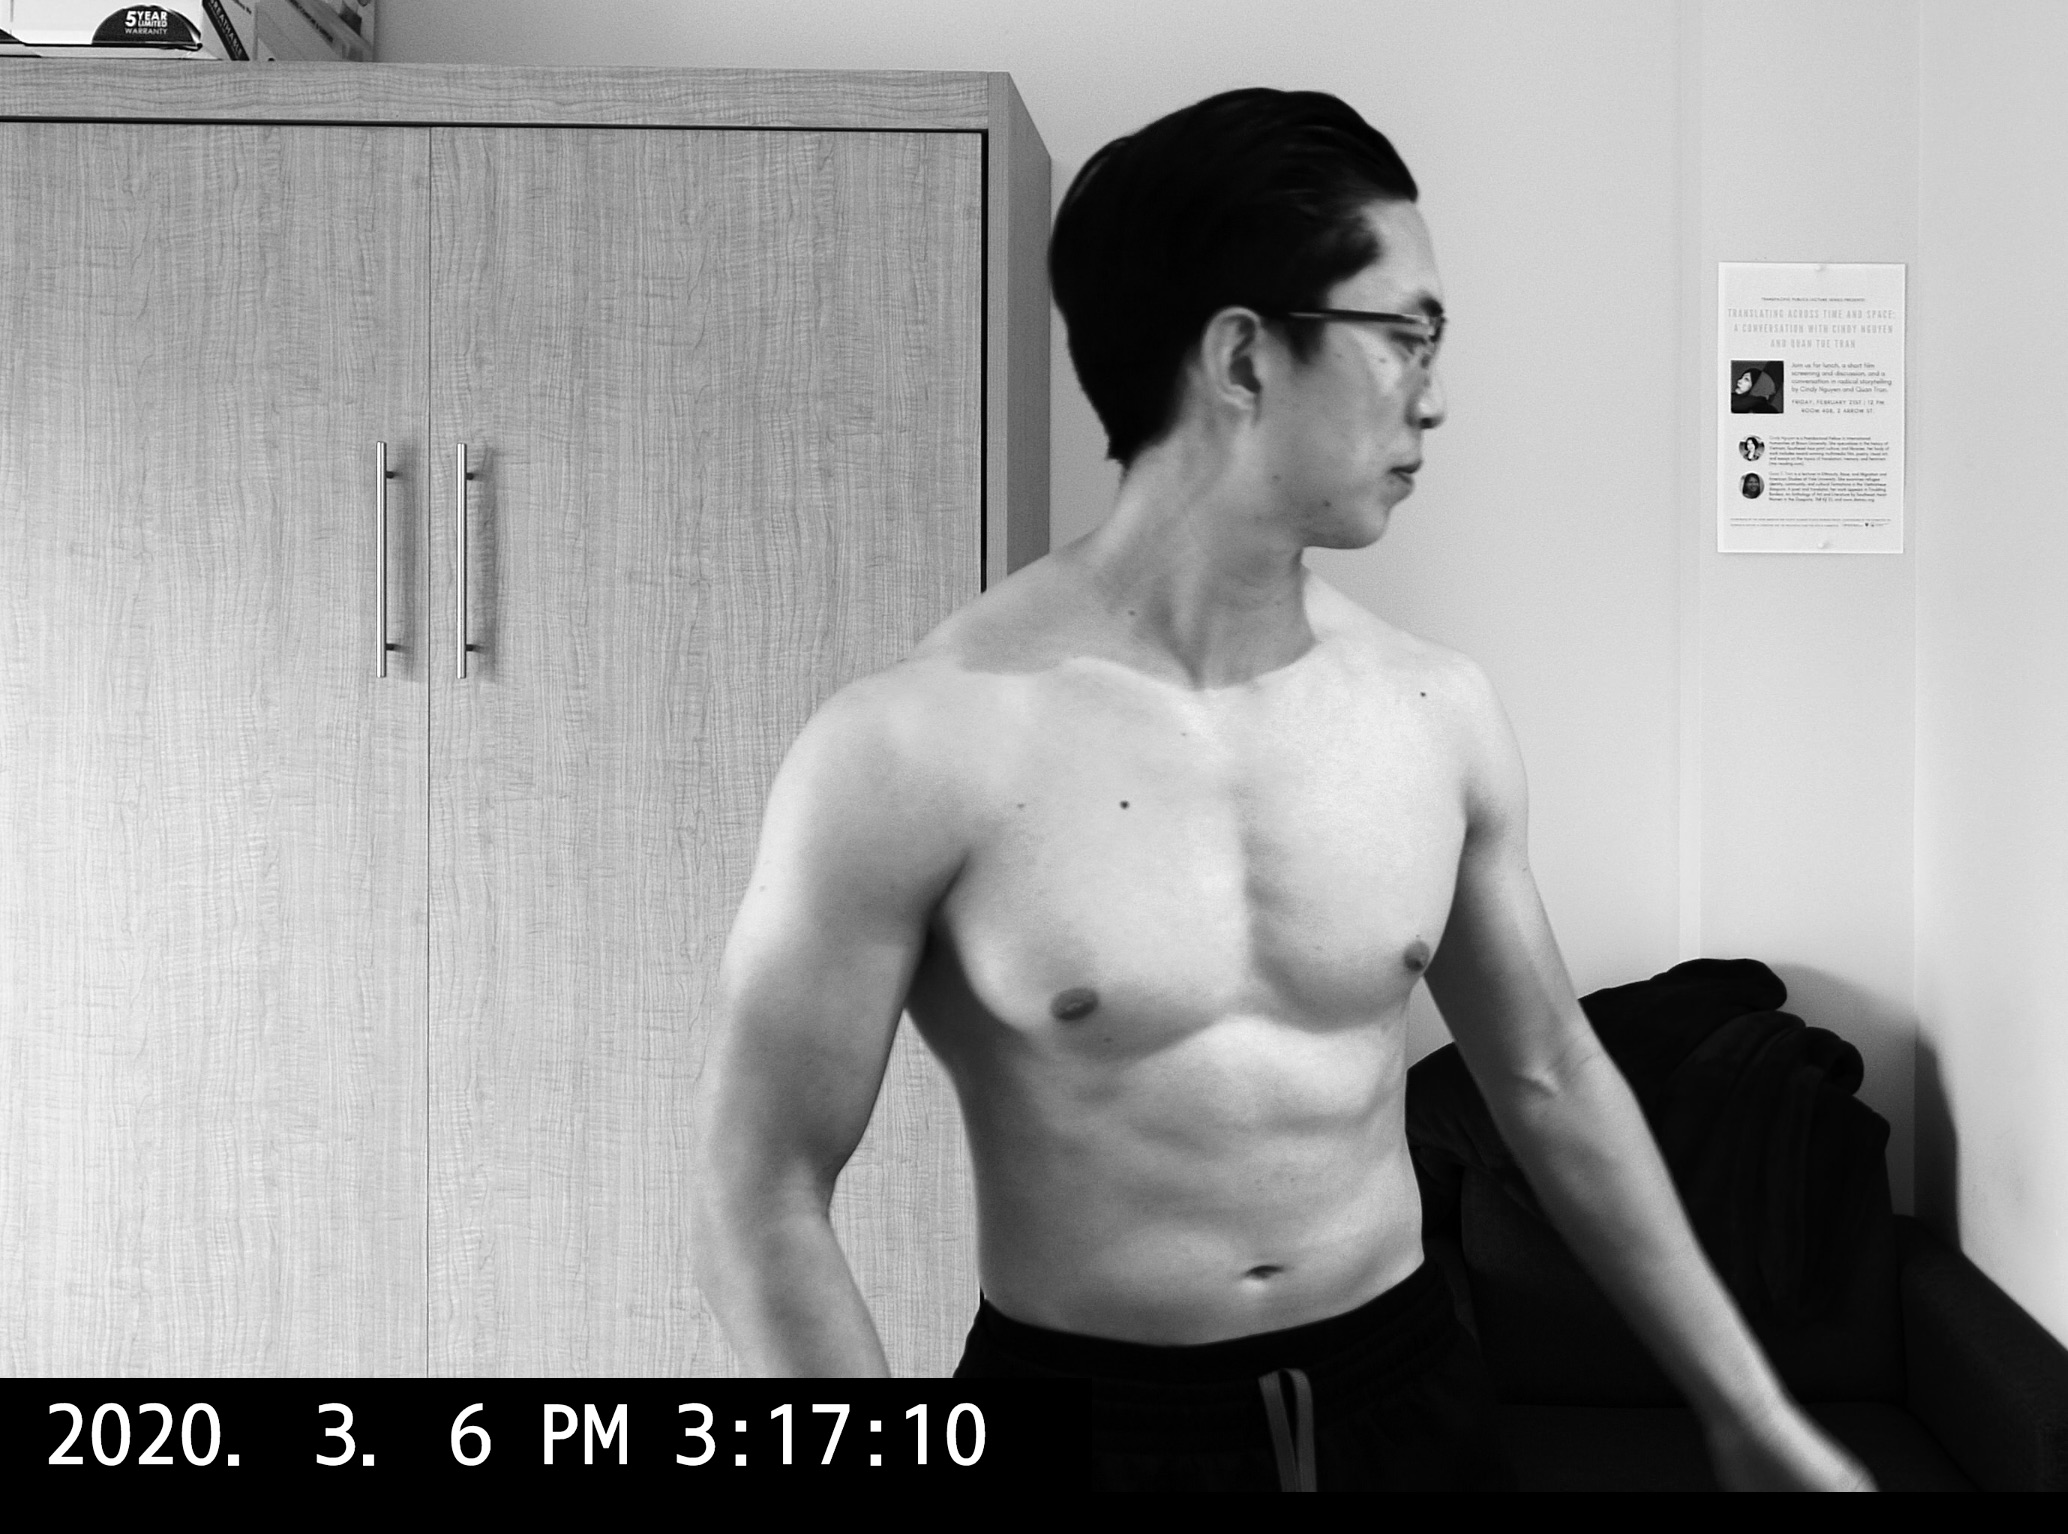 ERIC KIM BODY MUSCLE FLEX